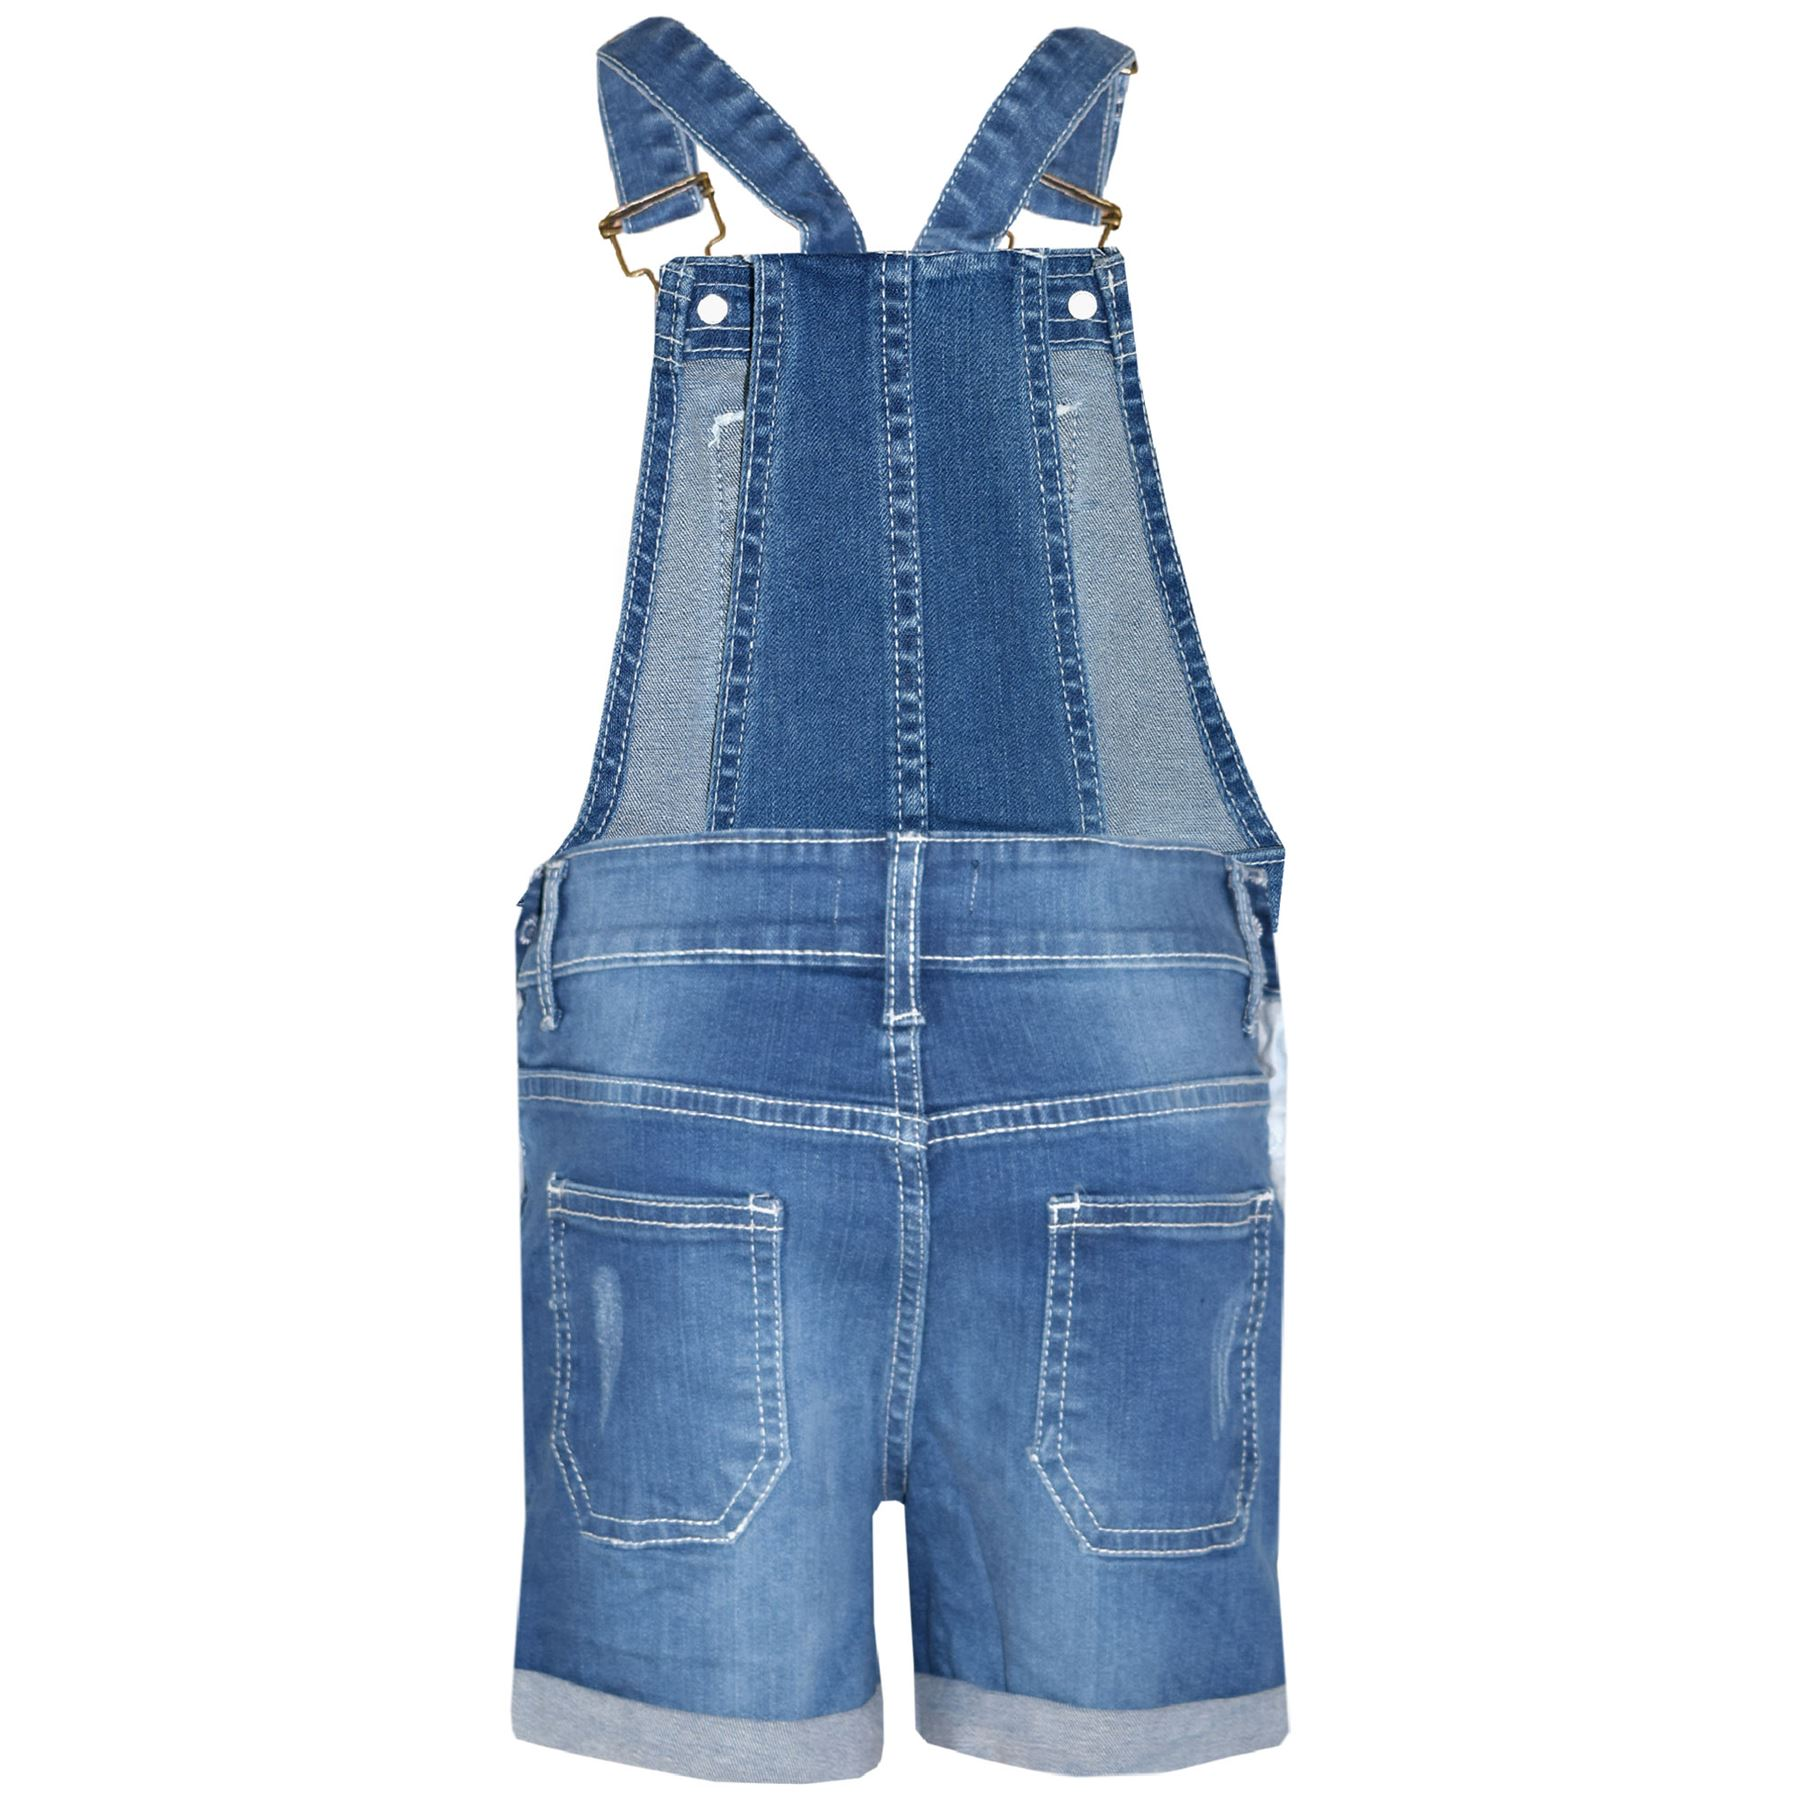 Adjustable Straps Age Up To 3 Months Next Boys Blue Dungarees